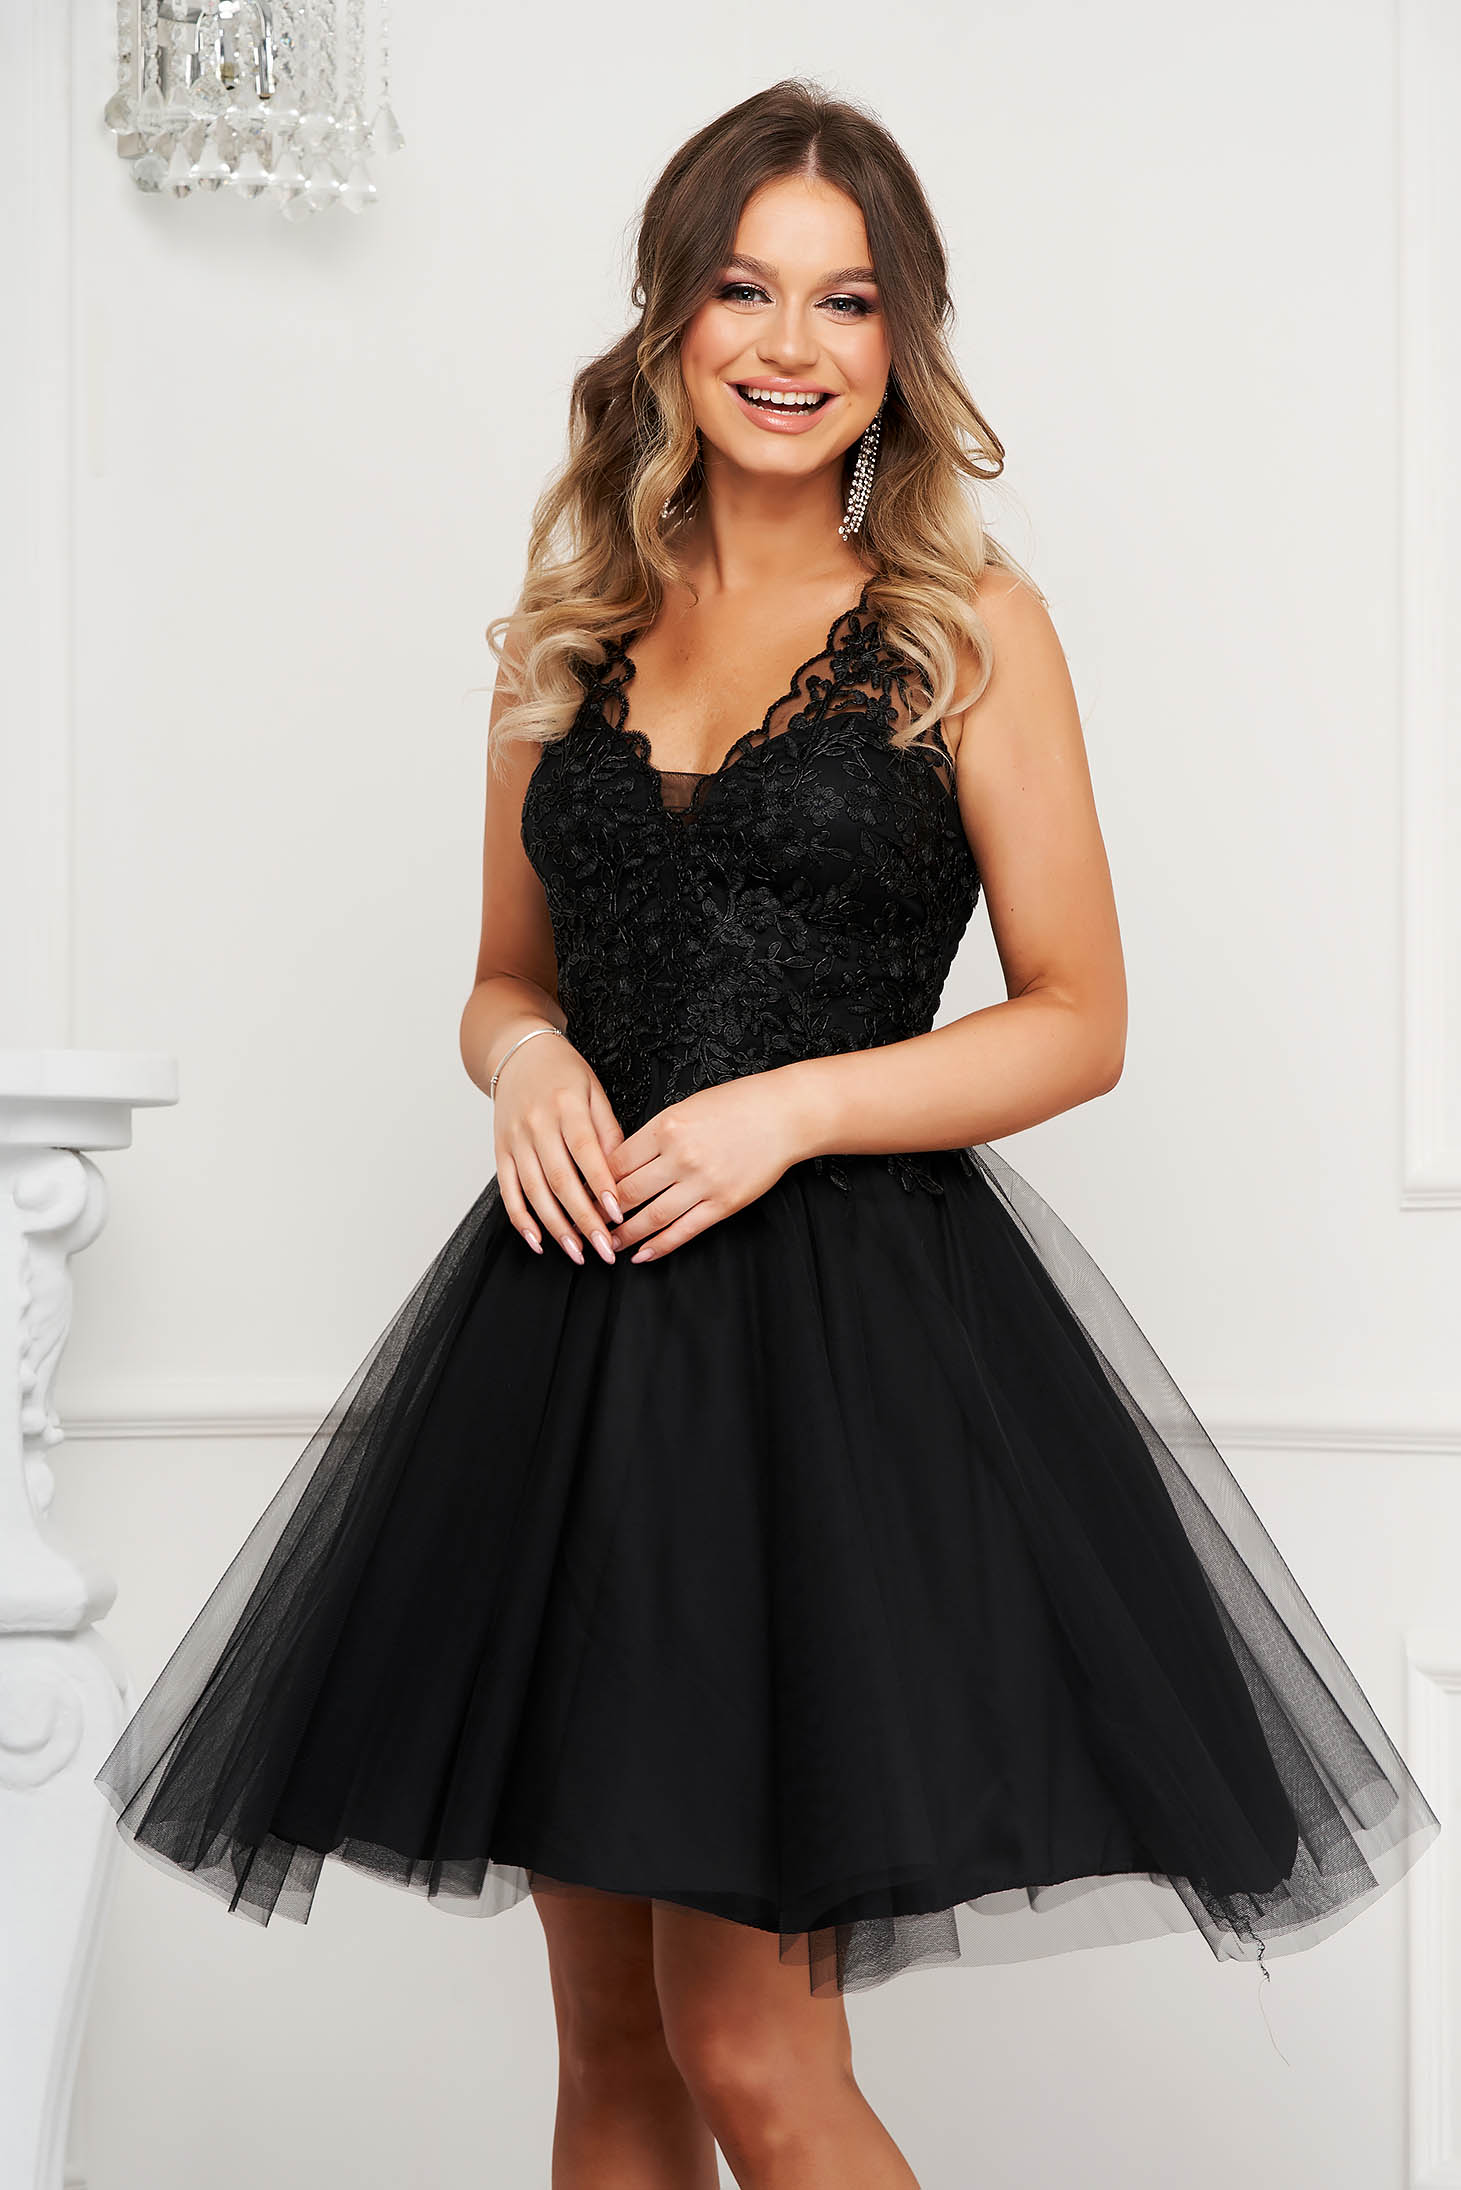 Black dress occasional cloche with push-up cups from tulle